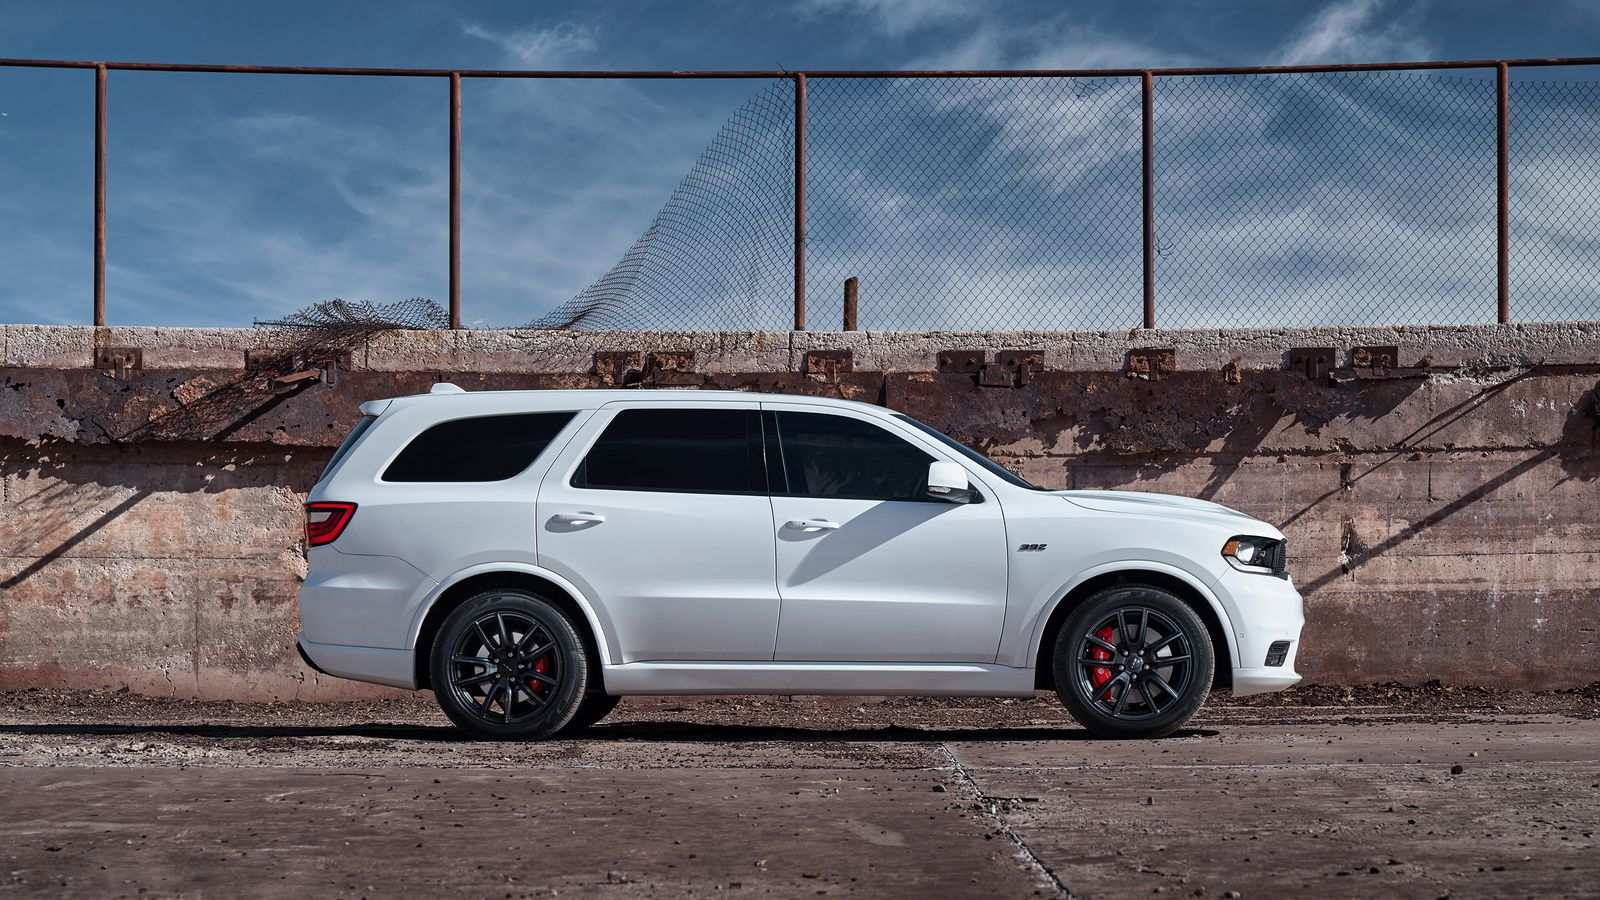 22 New Dodge Full Size Suv 2020 Redesign and Concept by Dodge Full Size Suv 2020